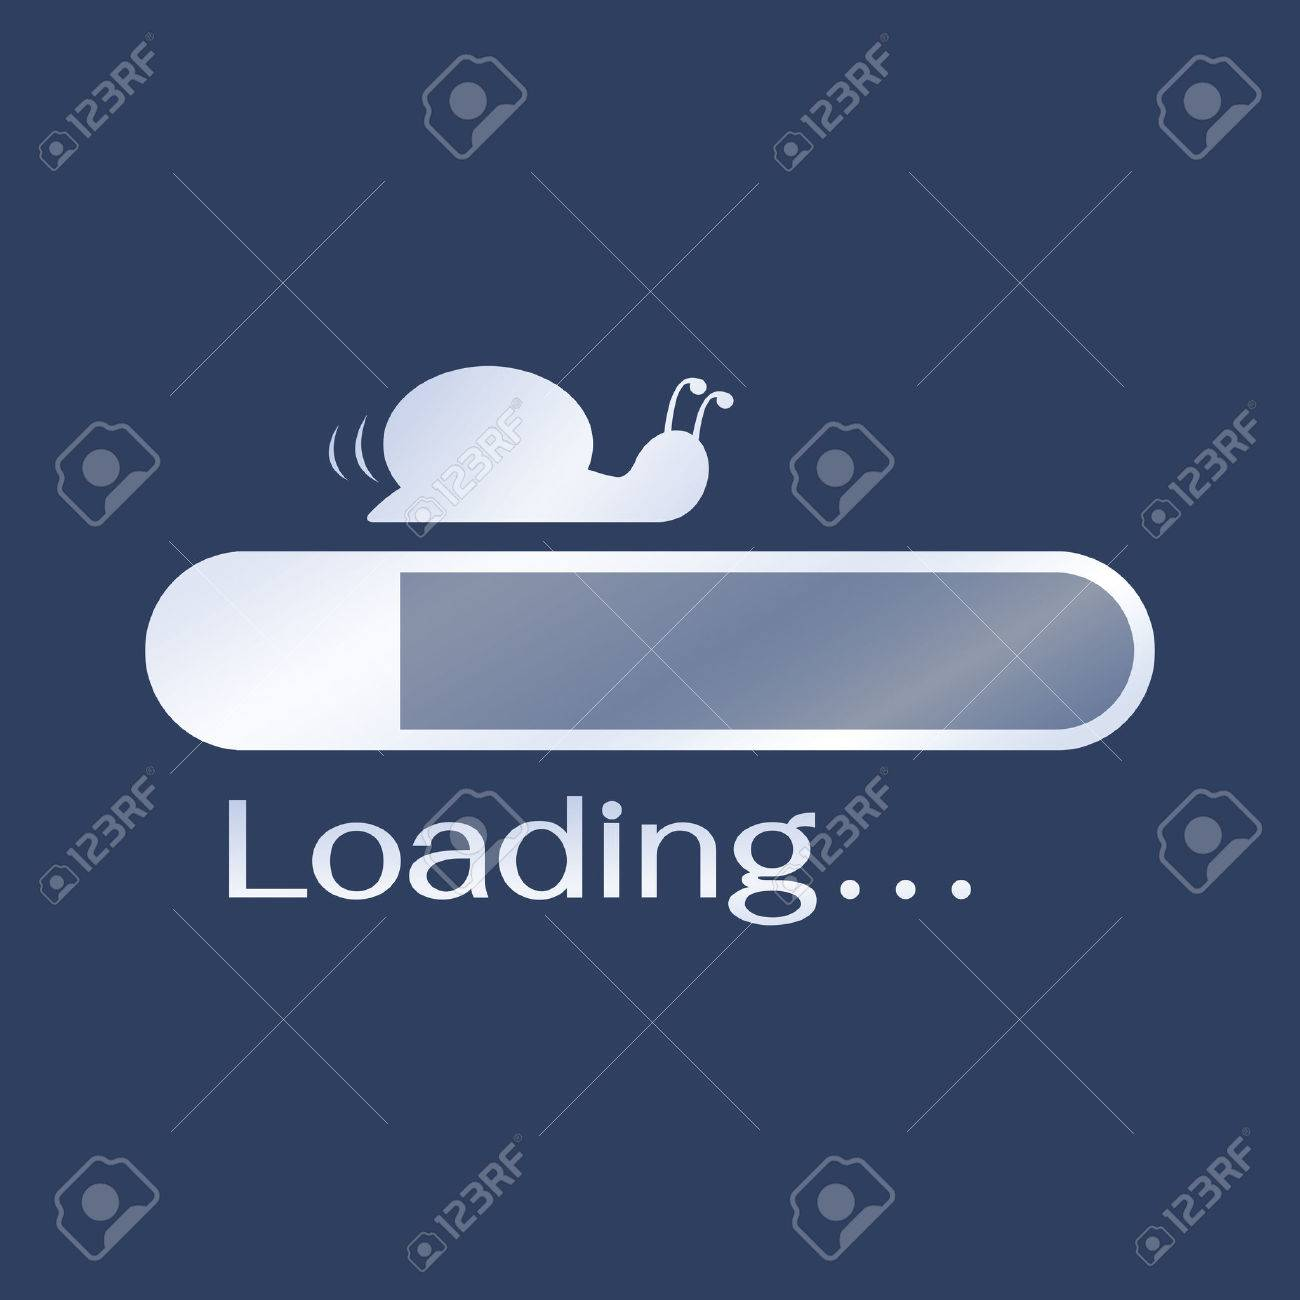 Too slow loading on computer, compare to slower than snail - 24678900